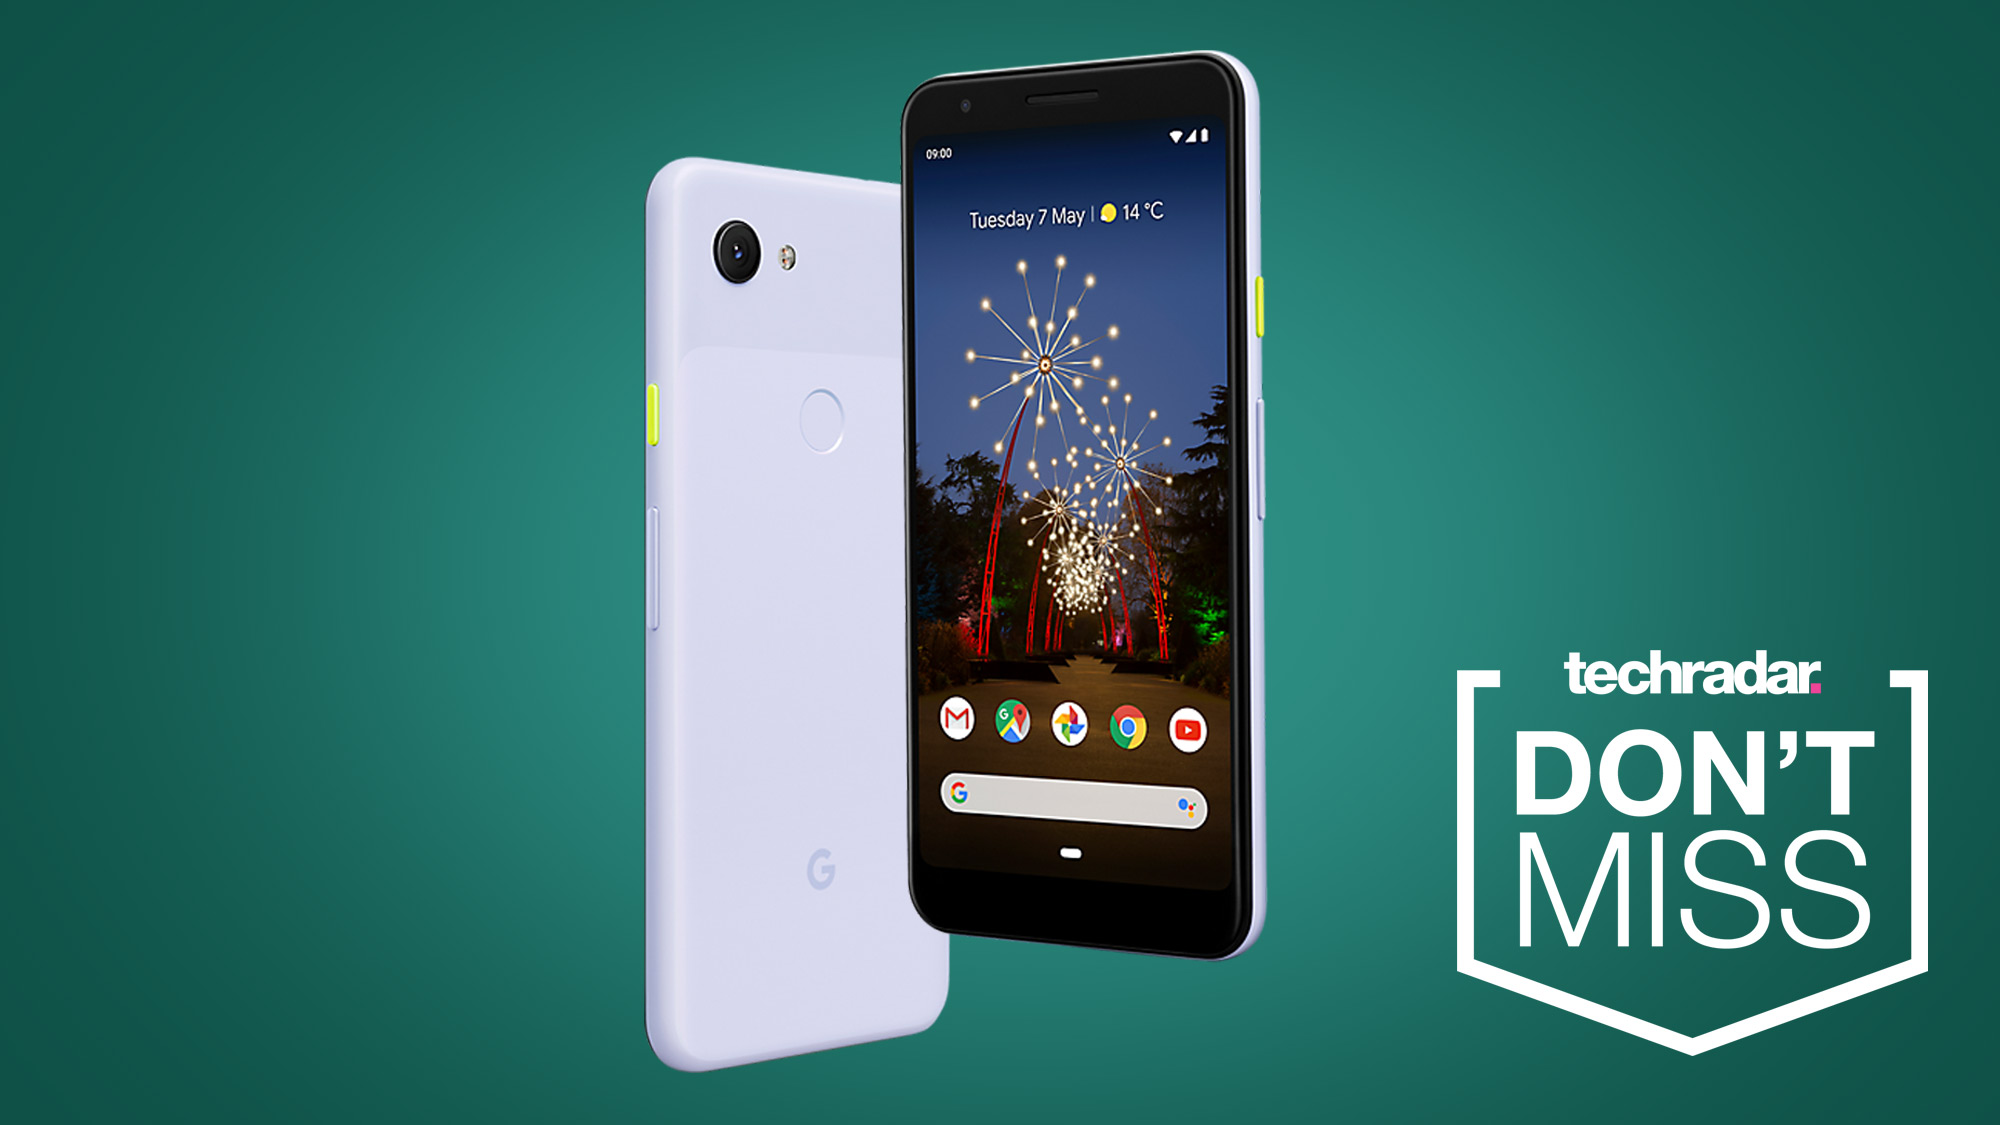 Slash the cost of the Google Pixel 3a by £80 with these exclusive Black Friday deals